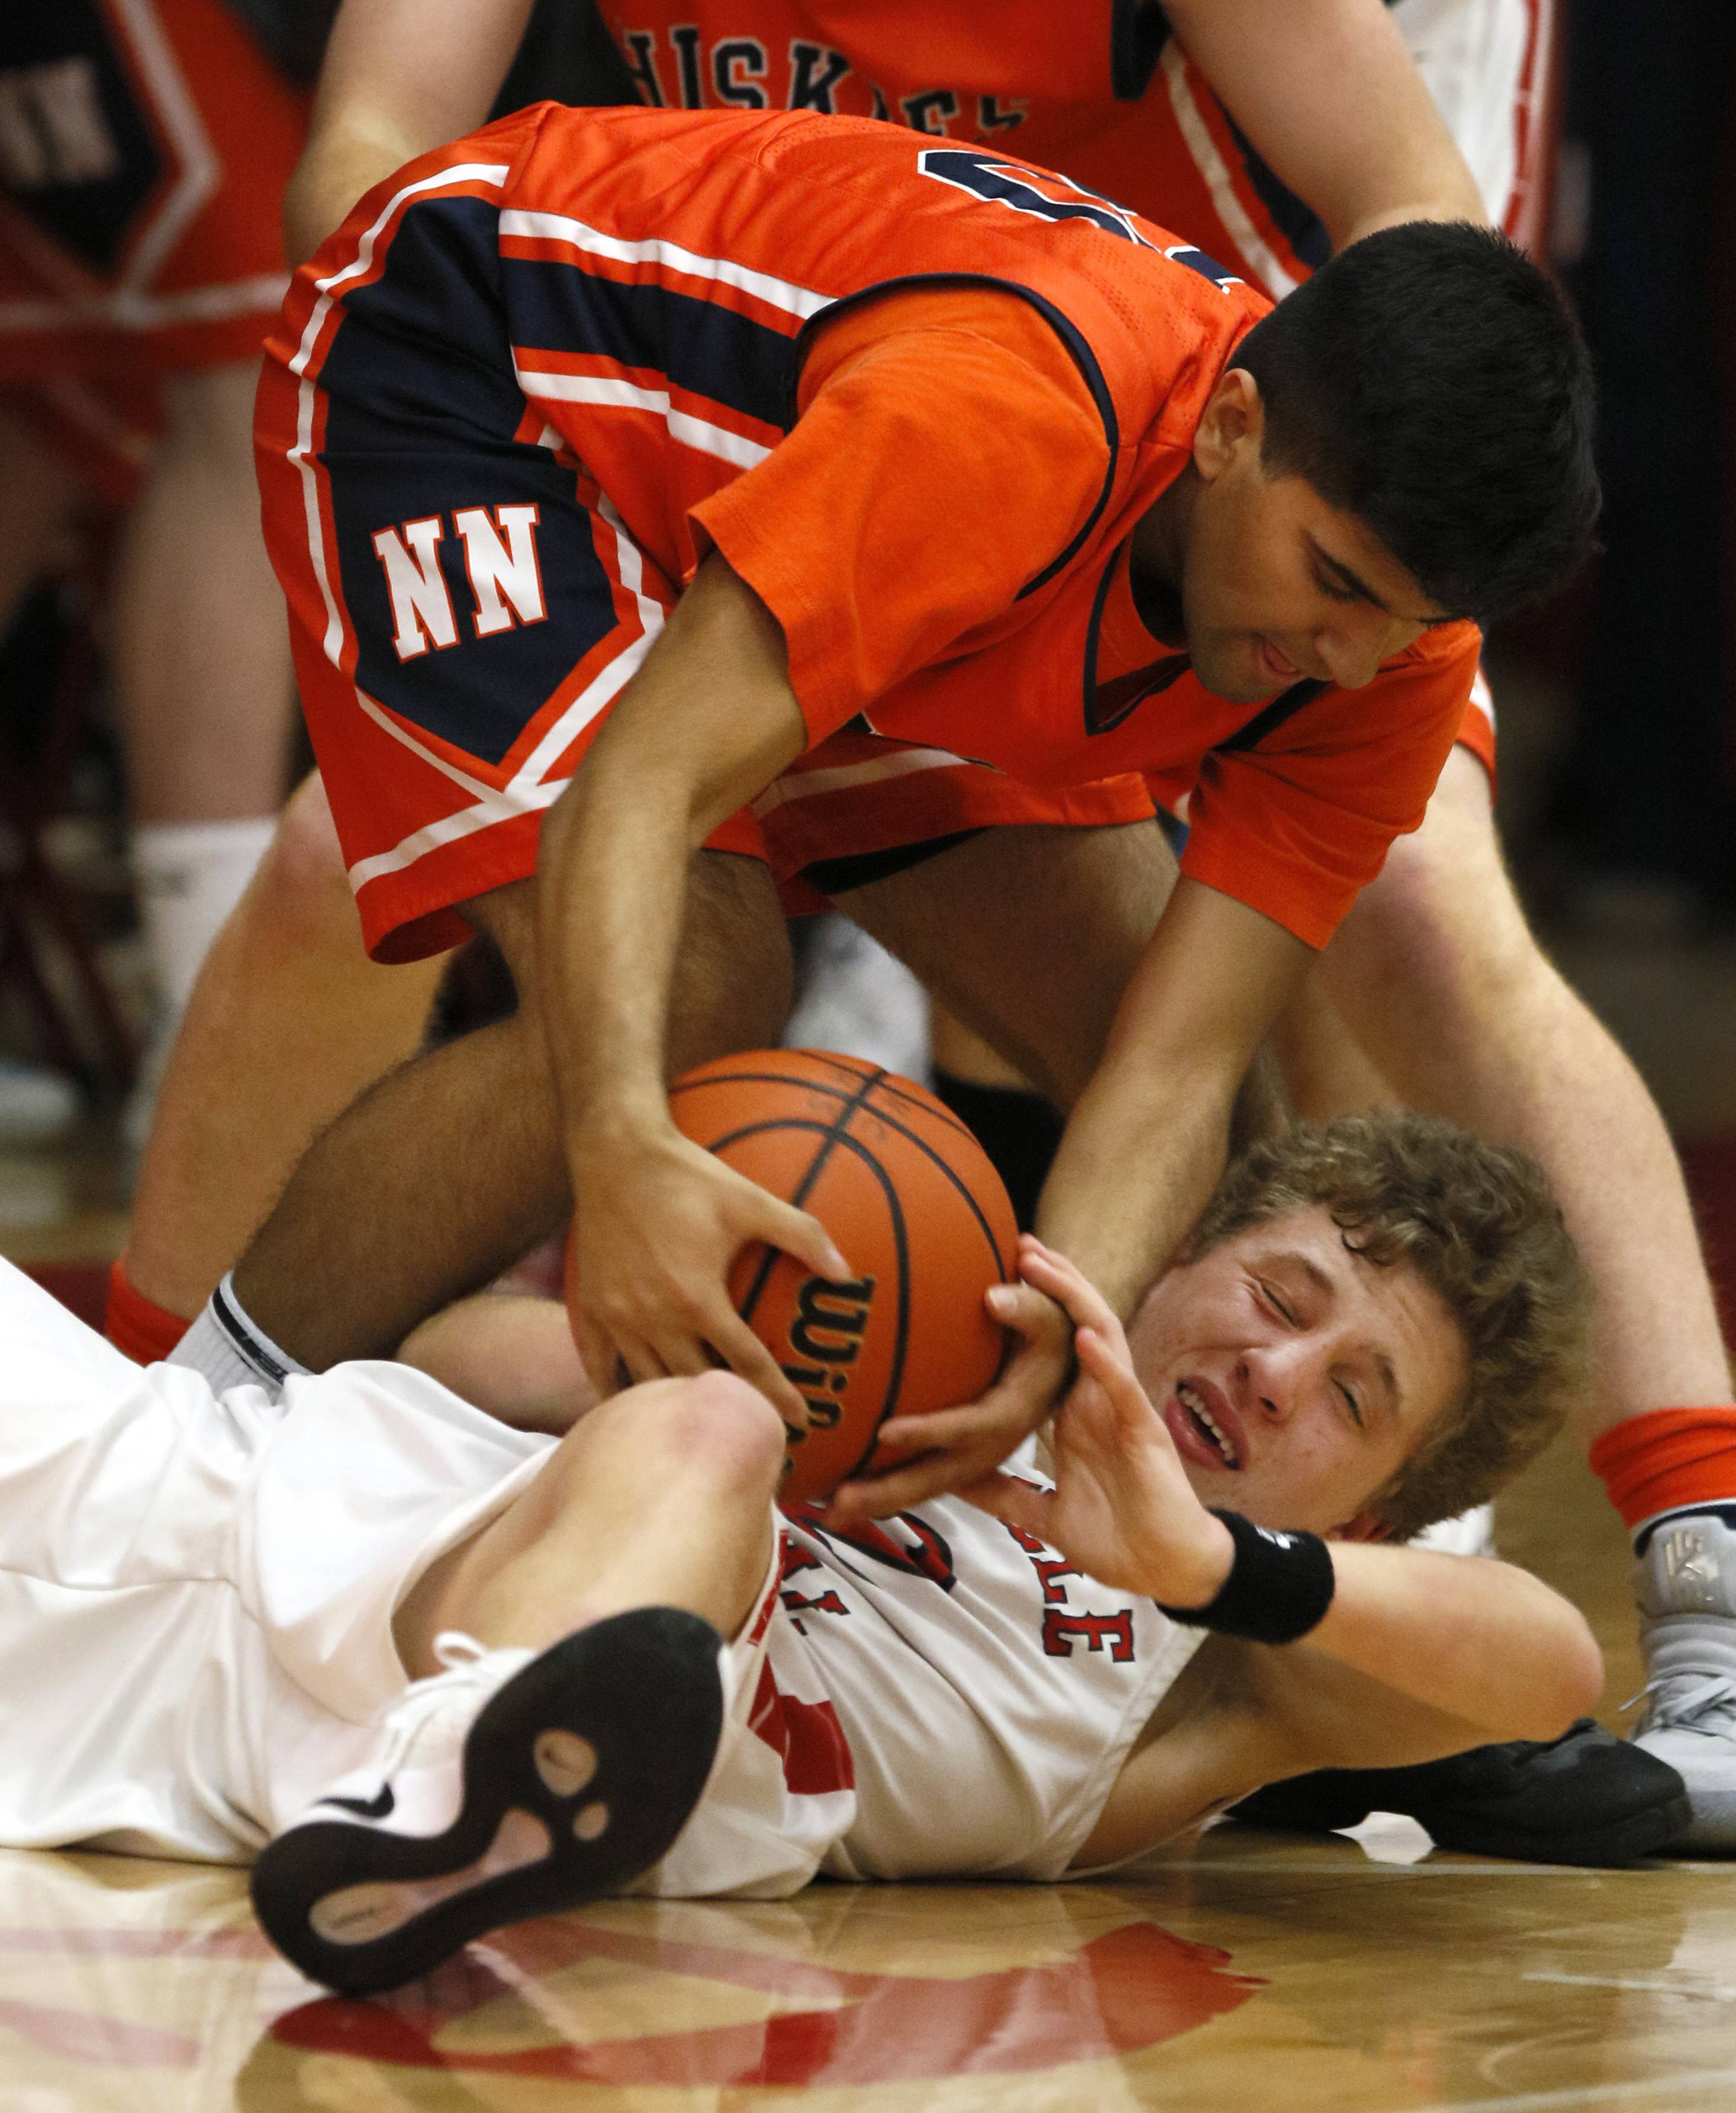 Images: Naperville Central hosted Naperville North for boys basketball